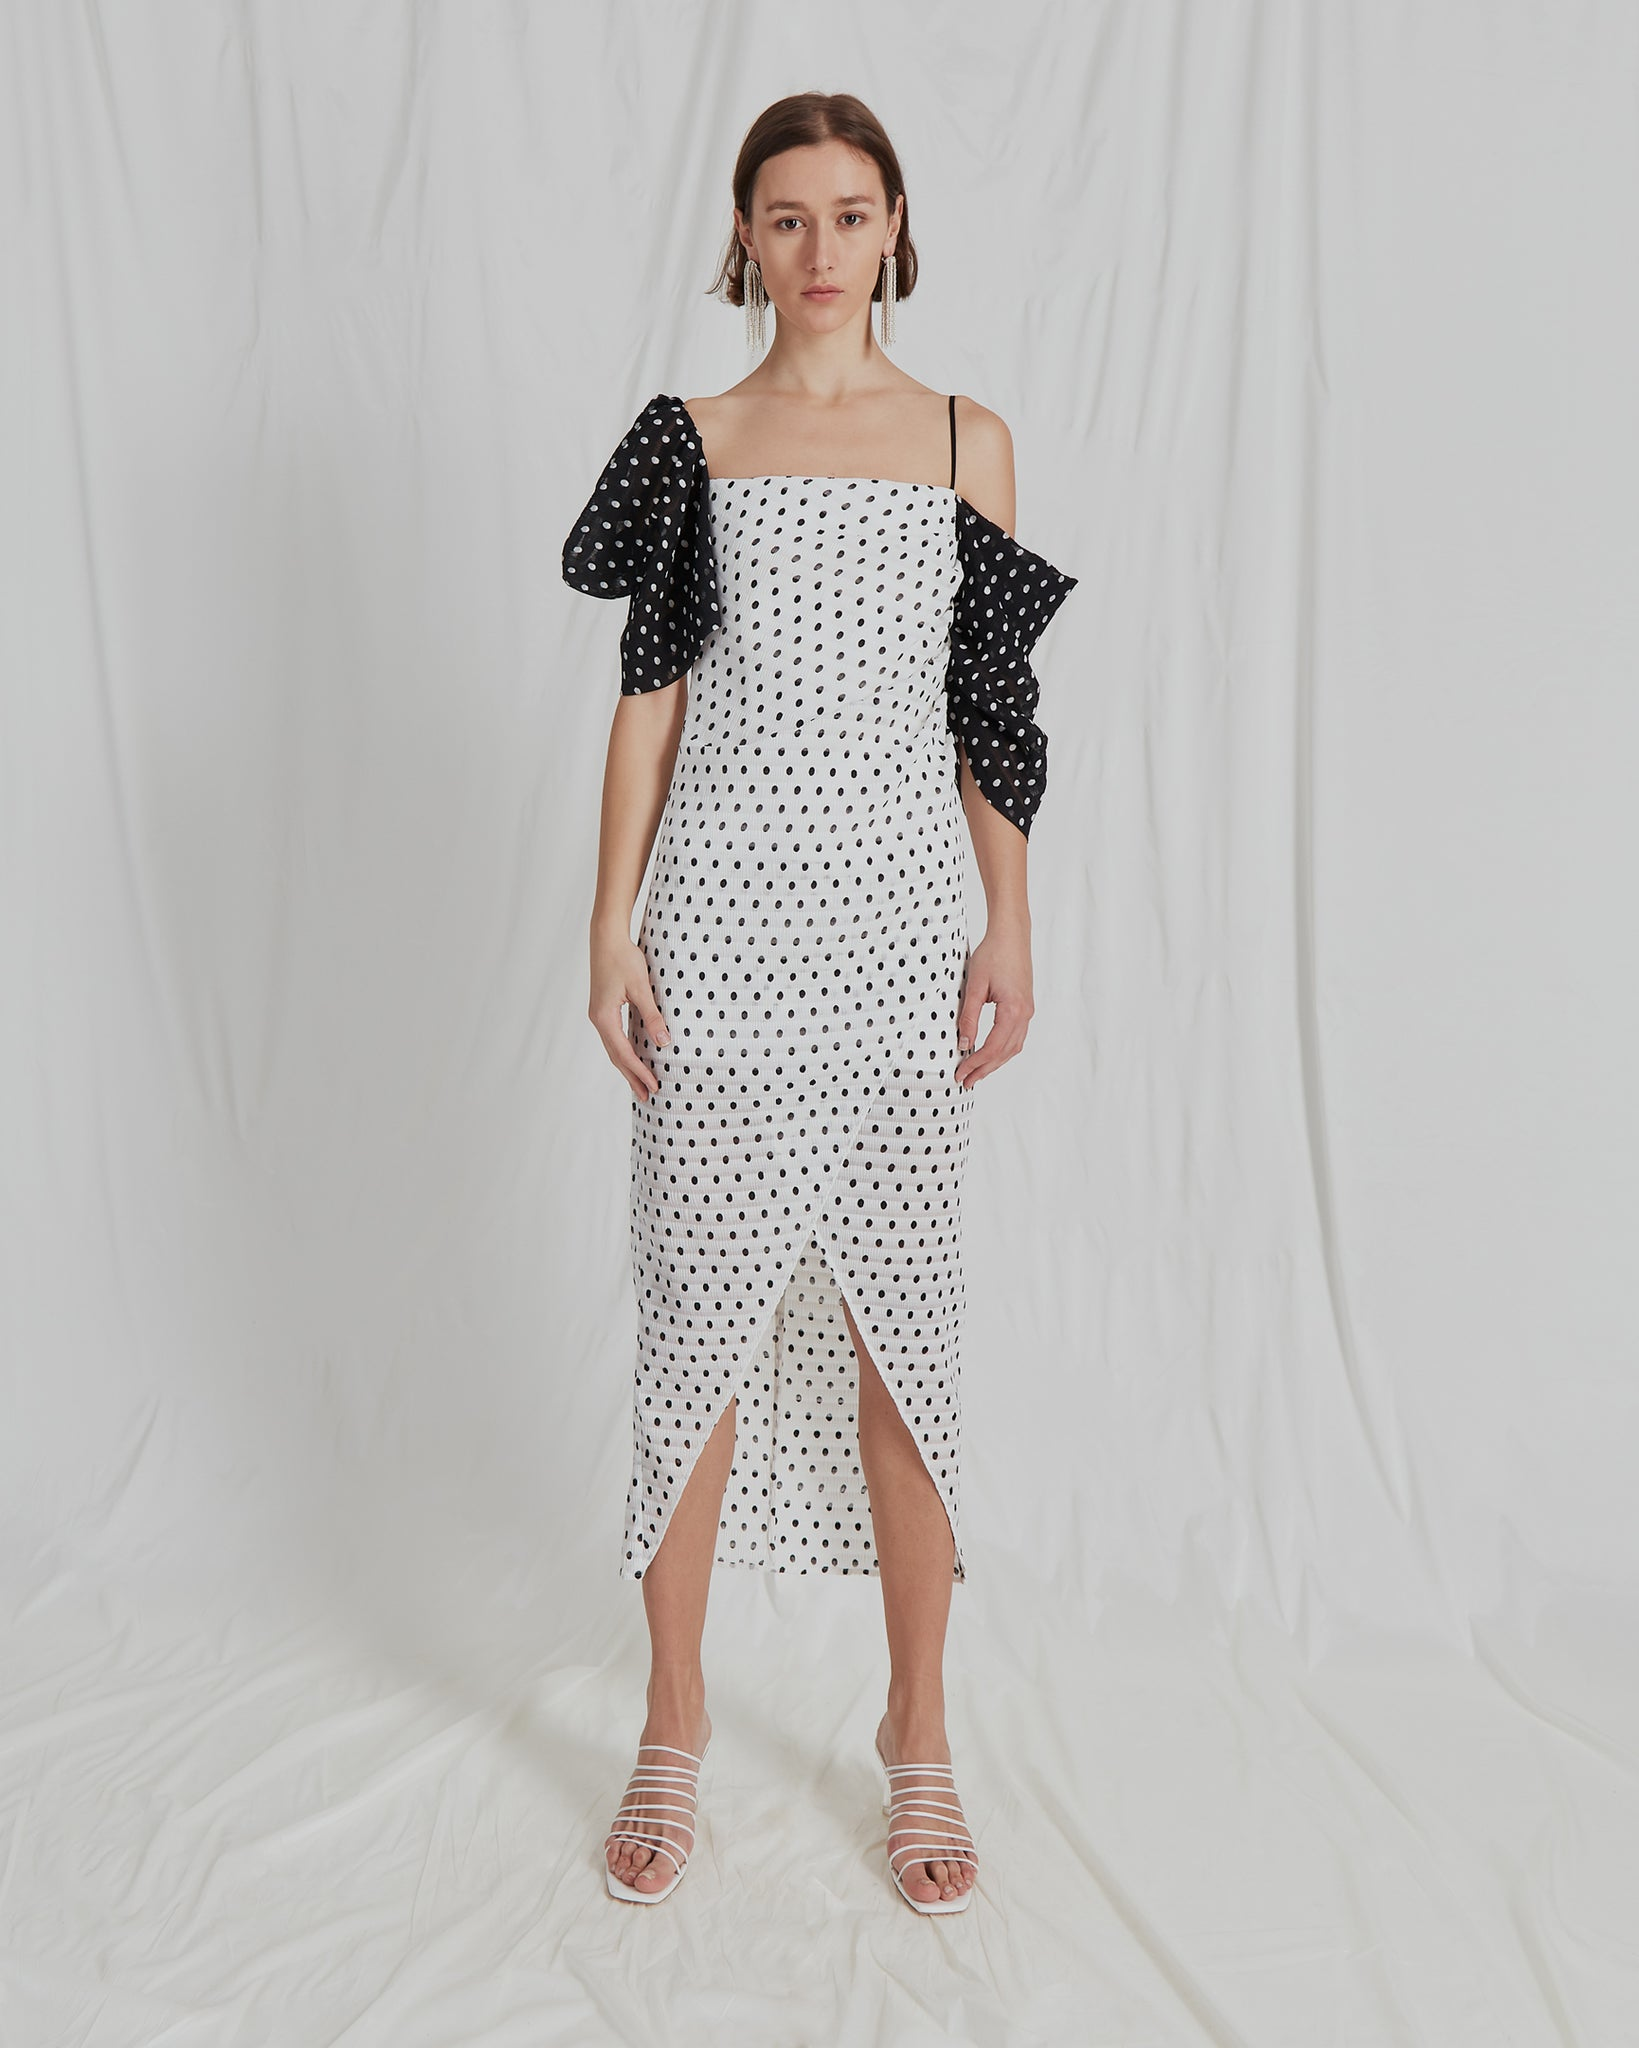 Layla Dress Seersucker Polka Dot Black and White - SPECIAL PRICE